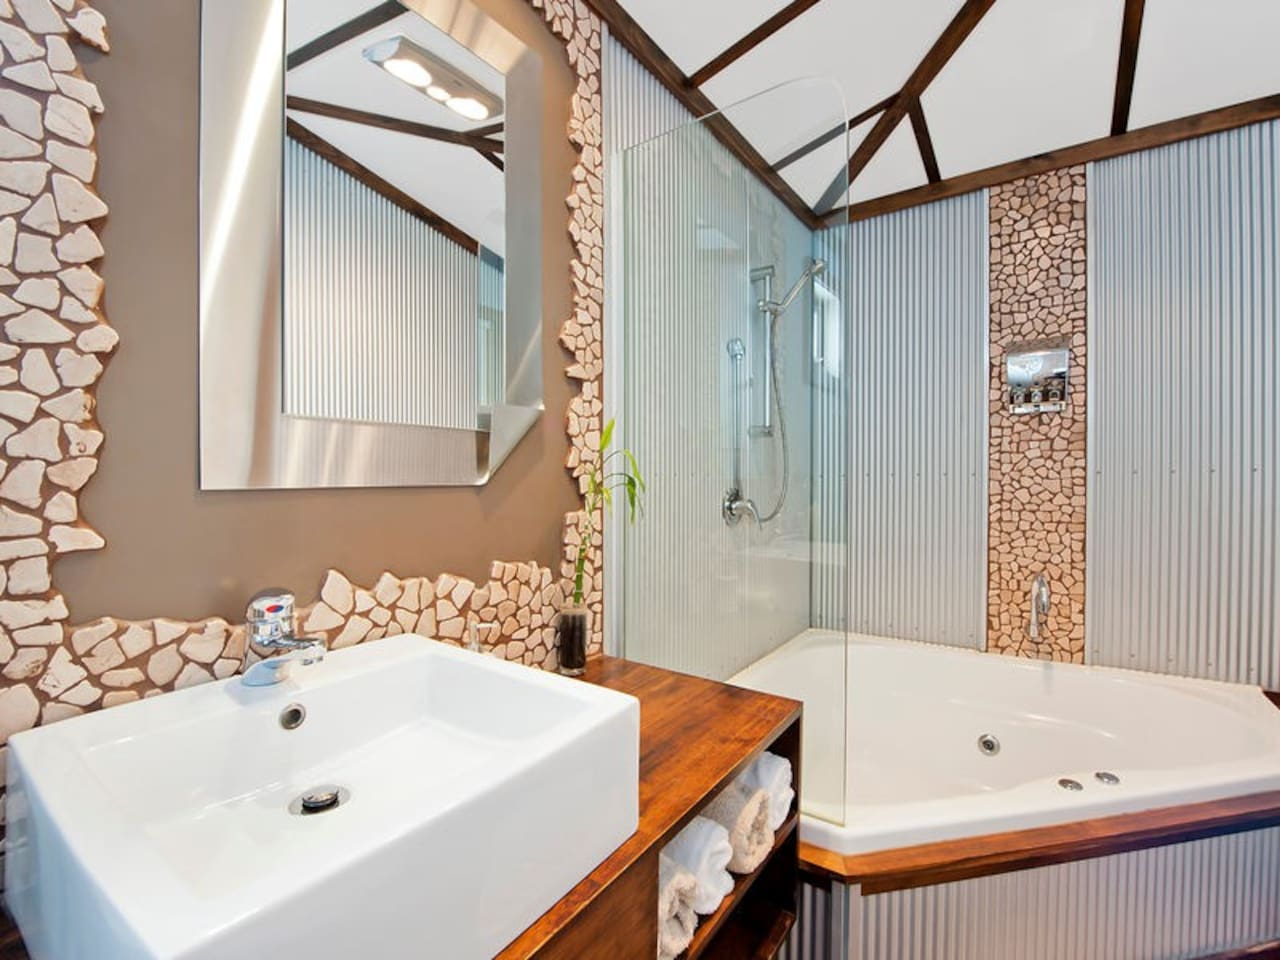 Bathroom with Large Spa